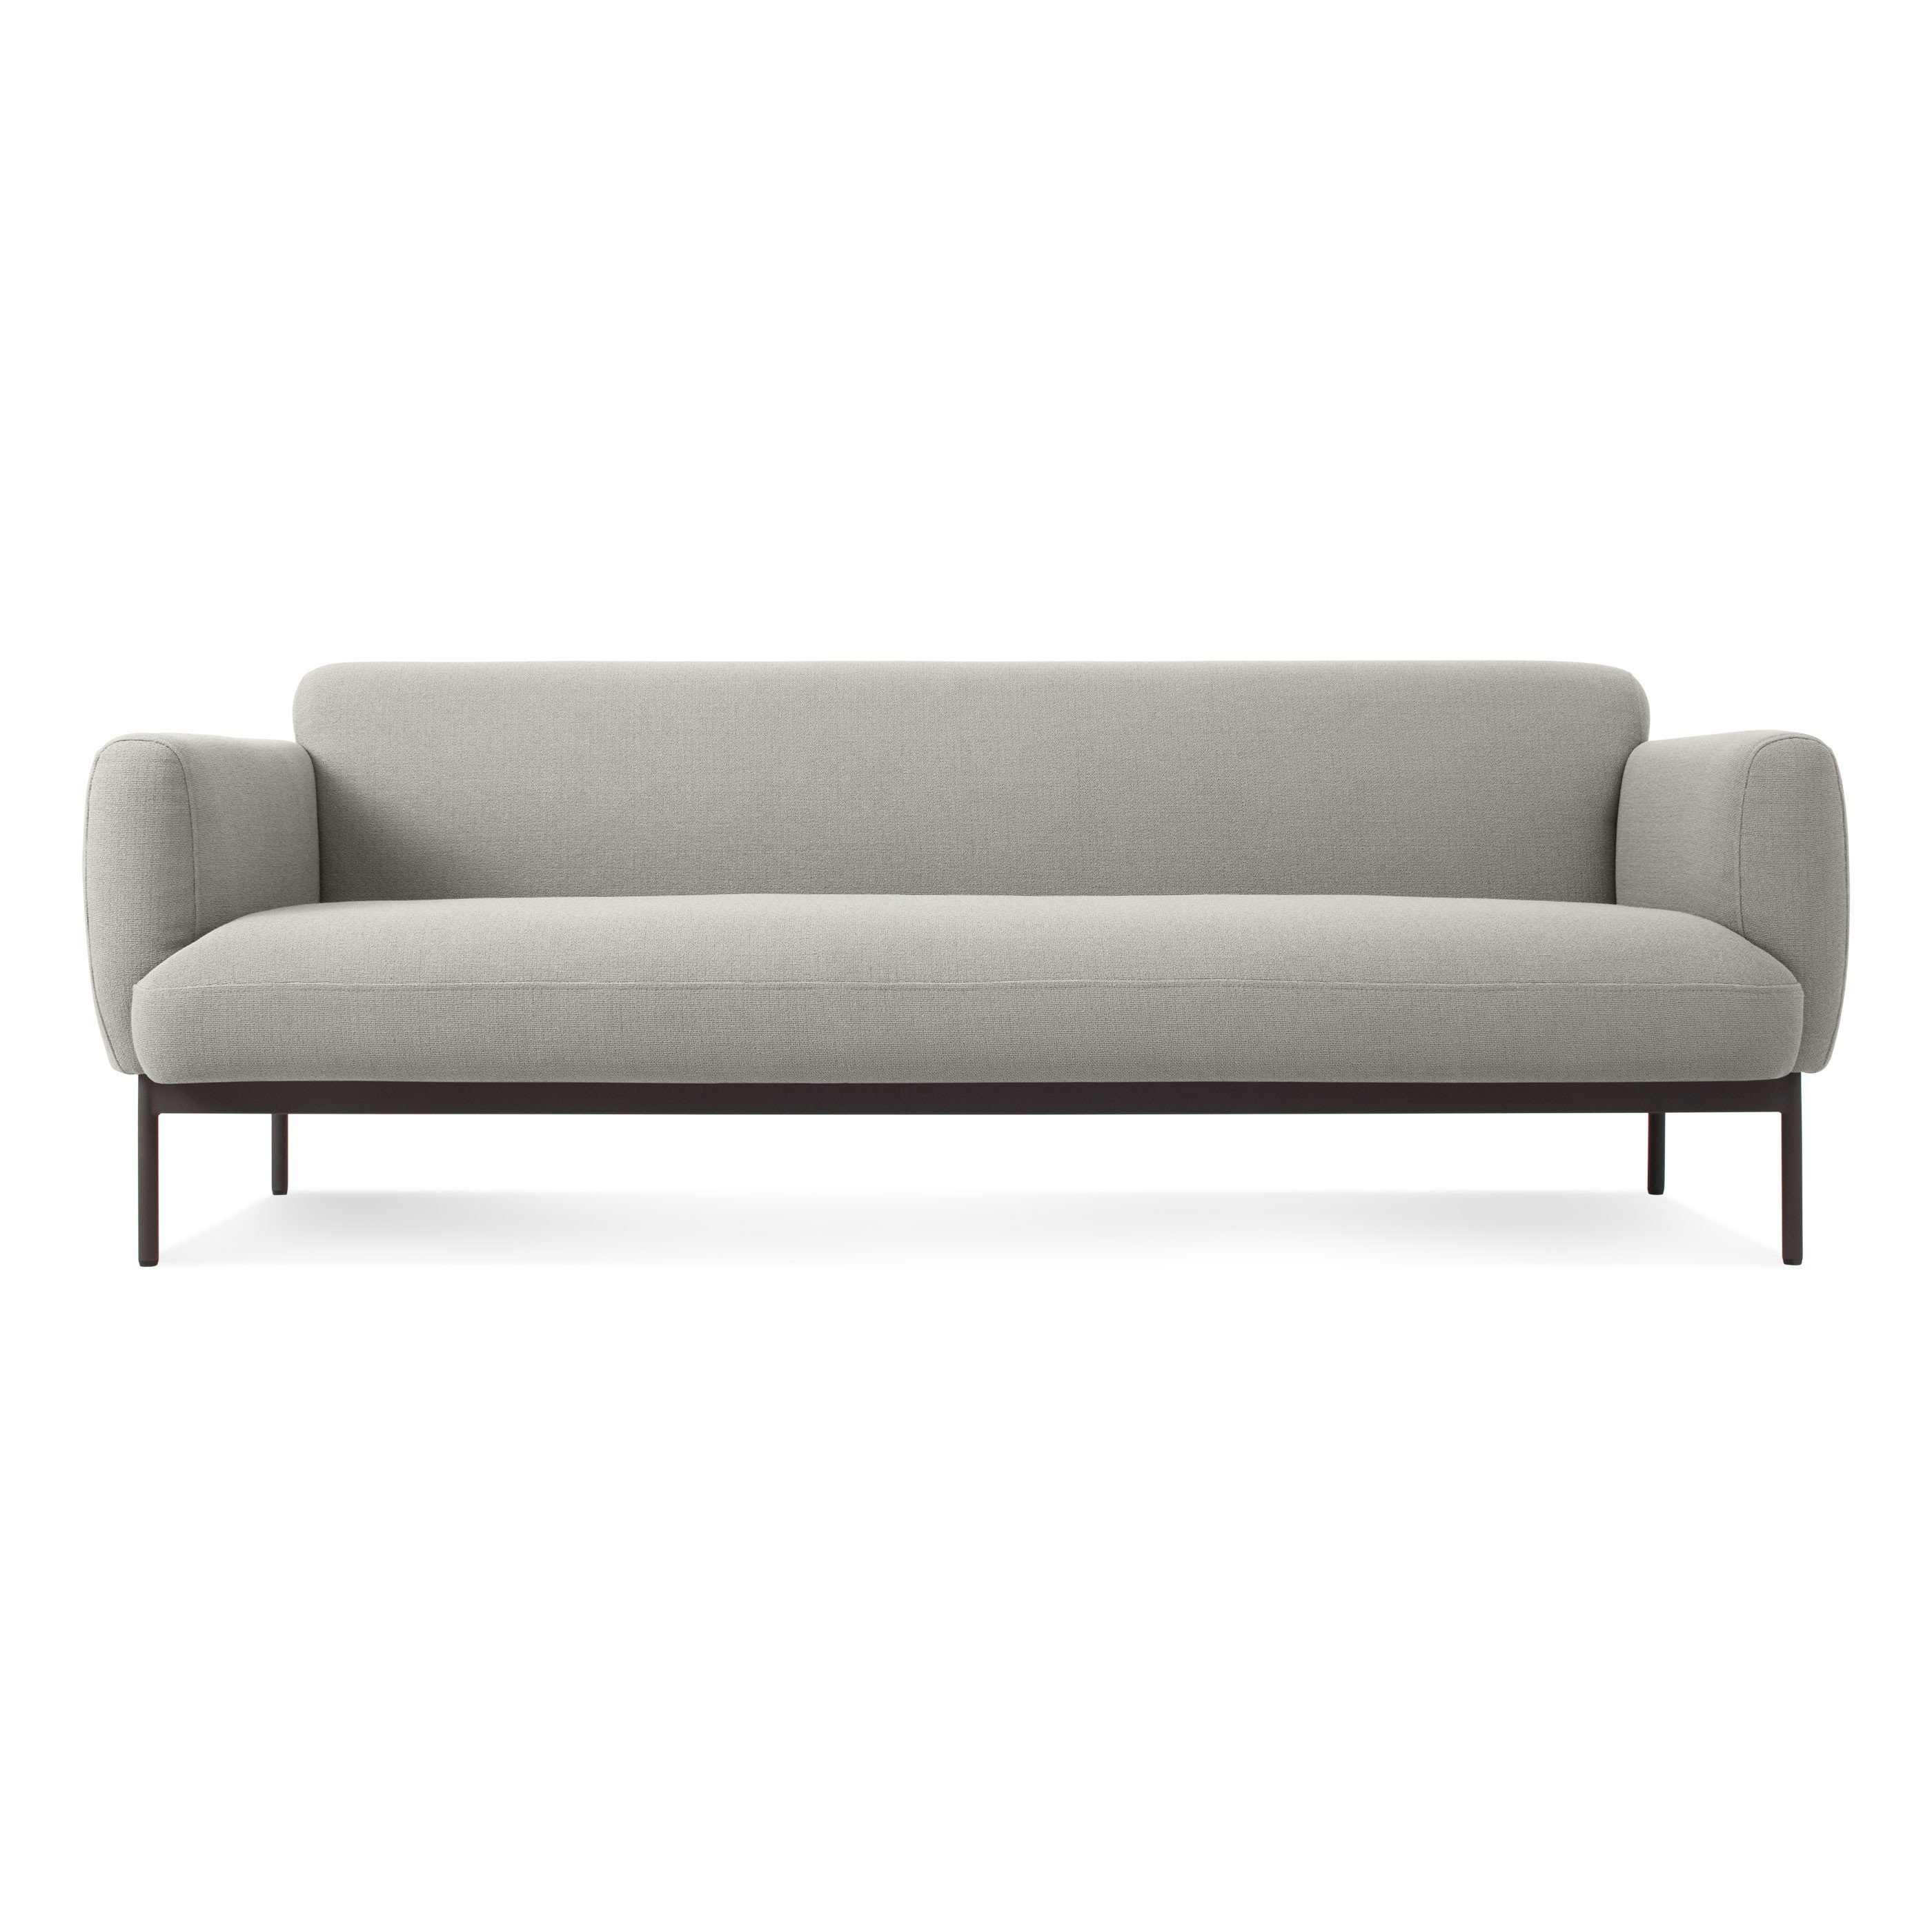 Sofas Puff D0dg Puff Puff sofa sofas and Sectionals Modern Market